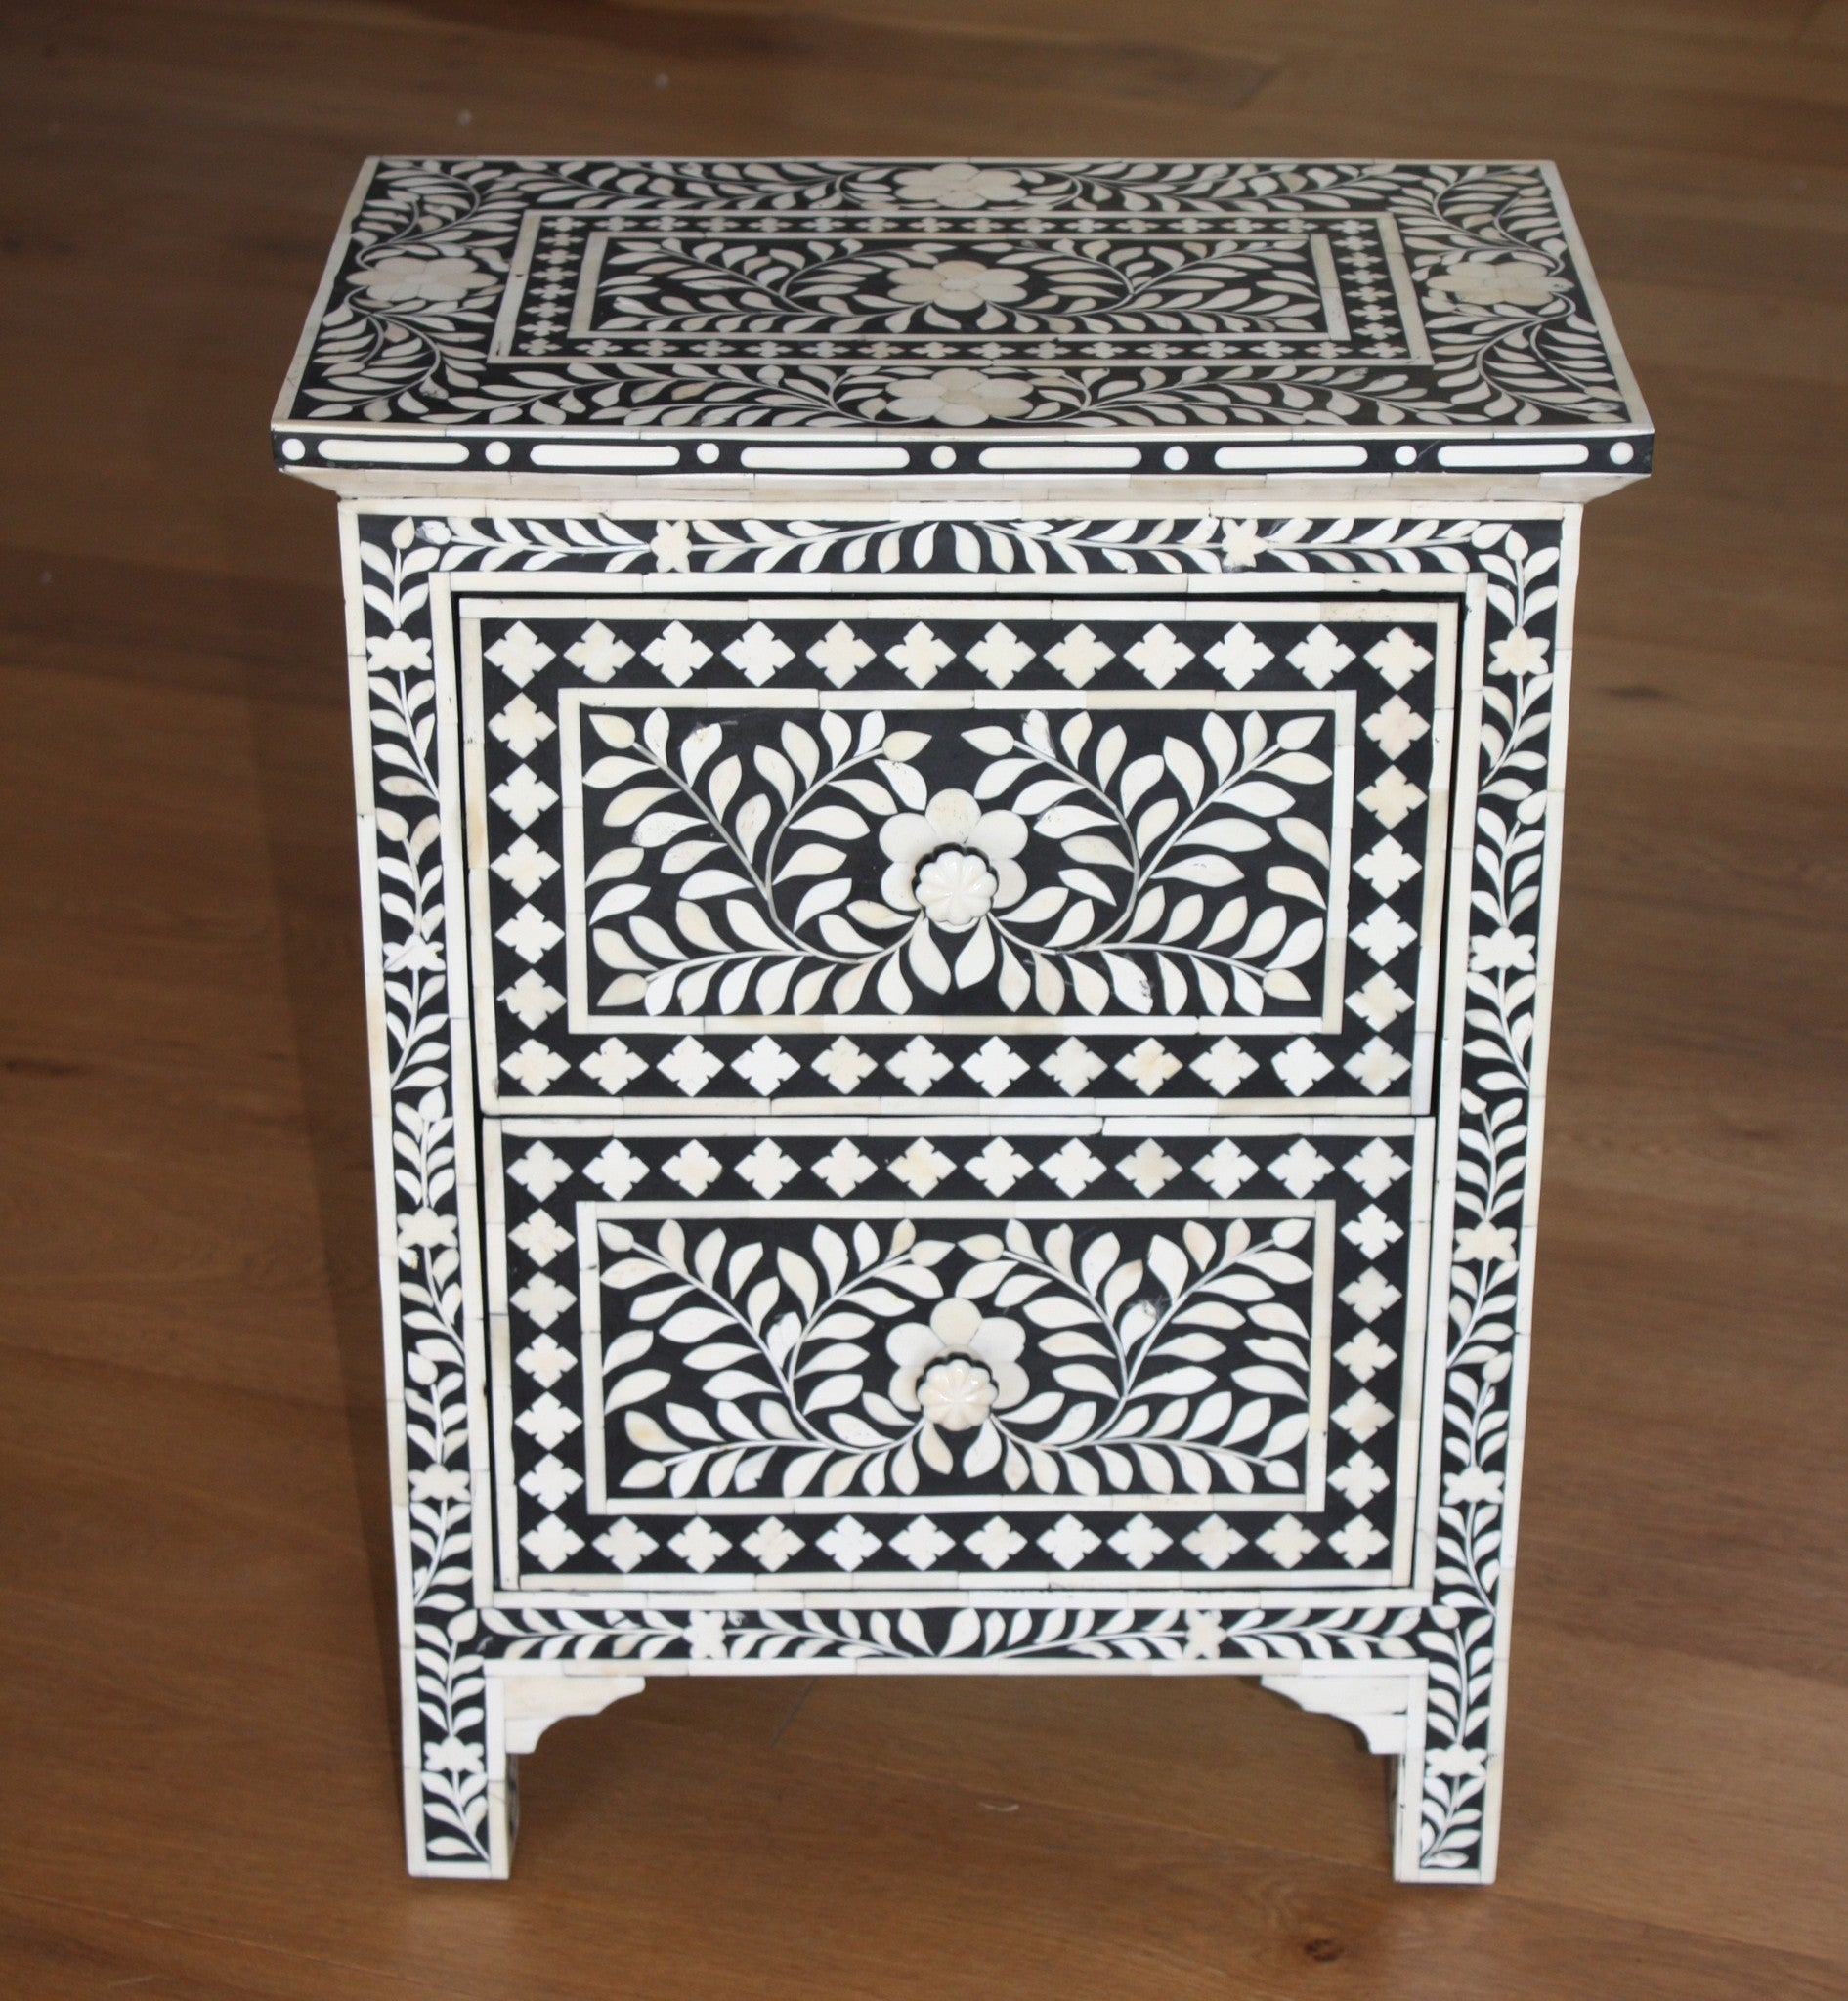 Pair Of Bone Inlay Bedside Chest Tables. Bedside Tables